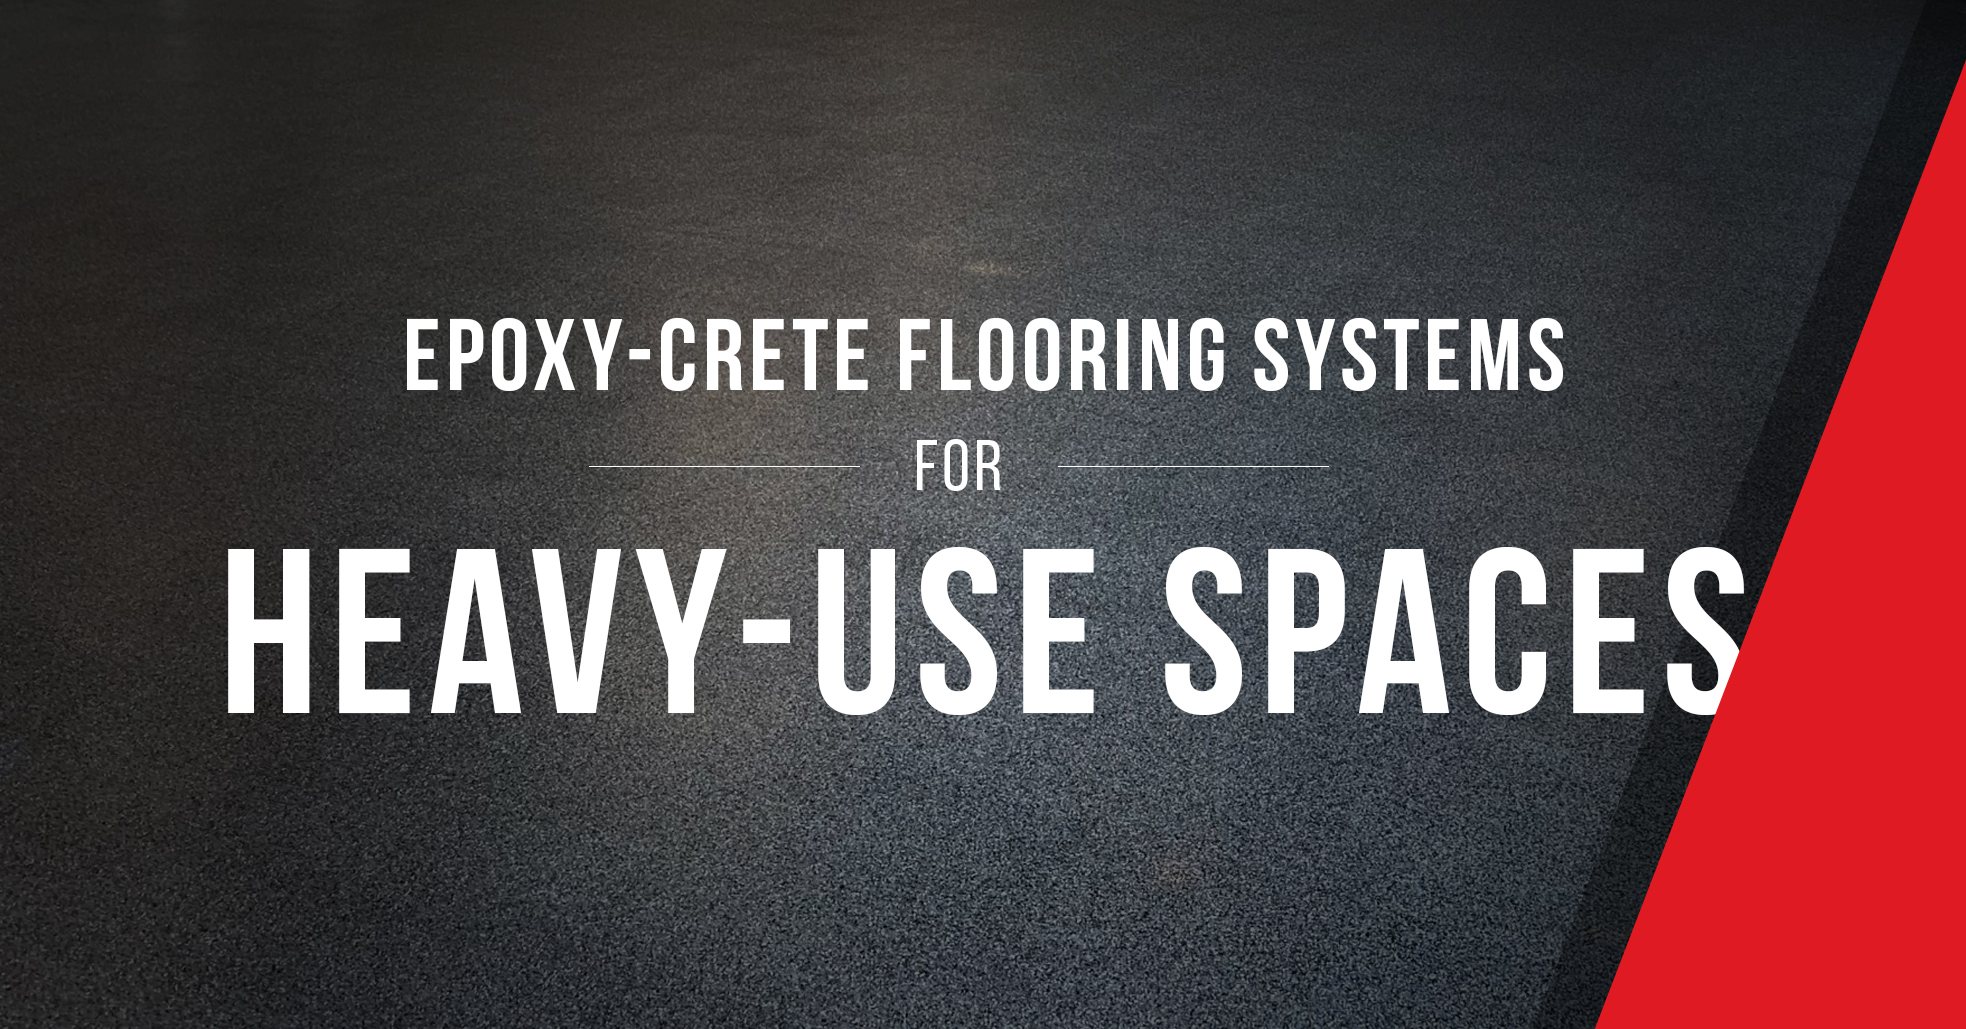 Epoxy-Crete Floors Graphic